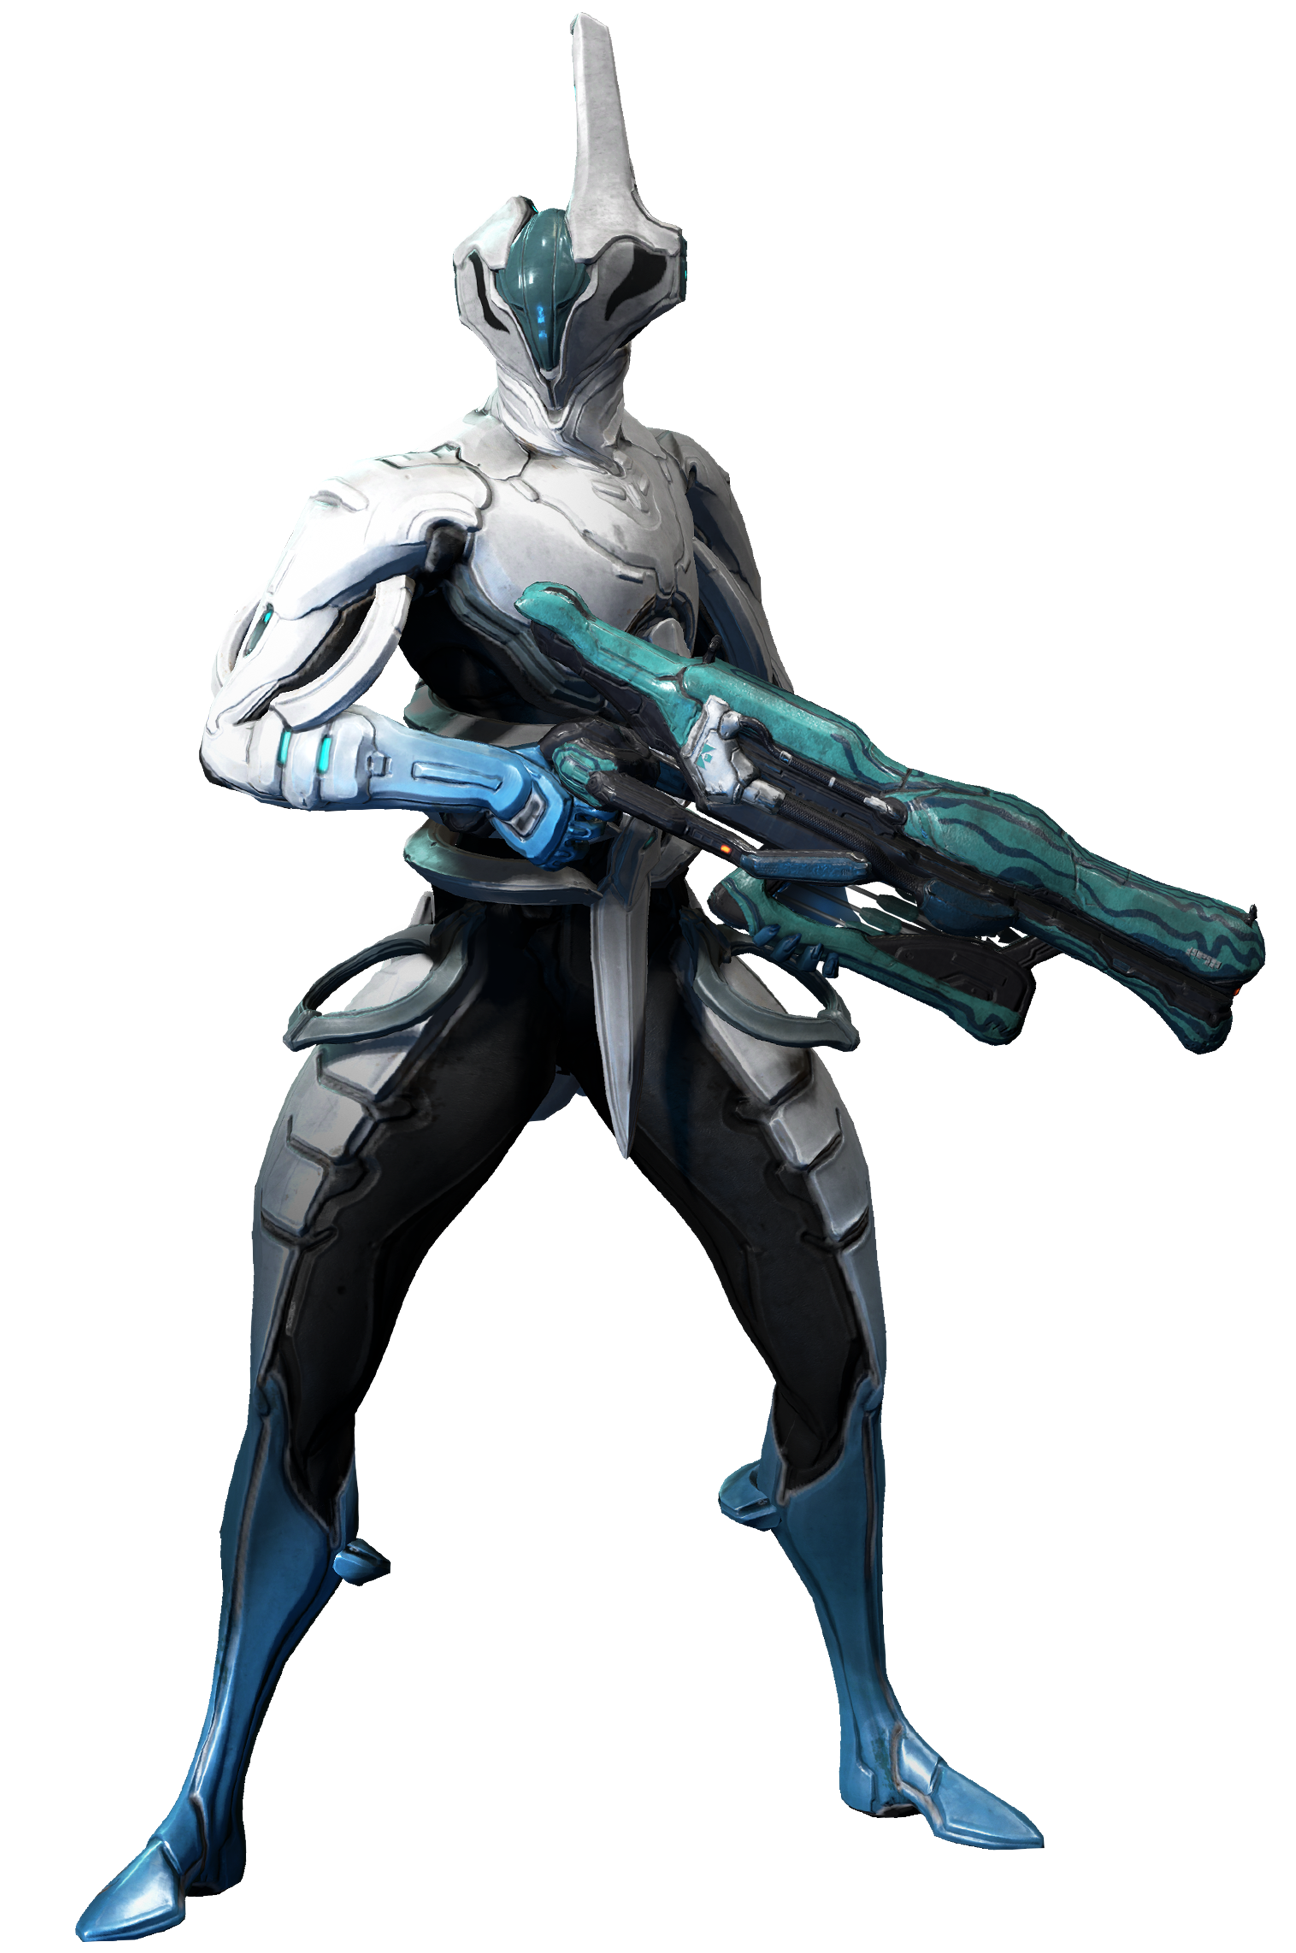 EQUINOX DAY is the form of light and vigor. The Warframe bursts ...